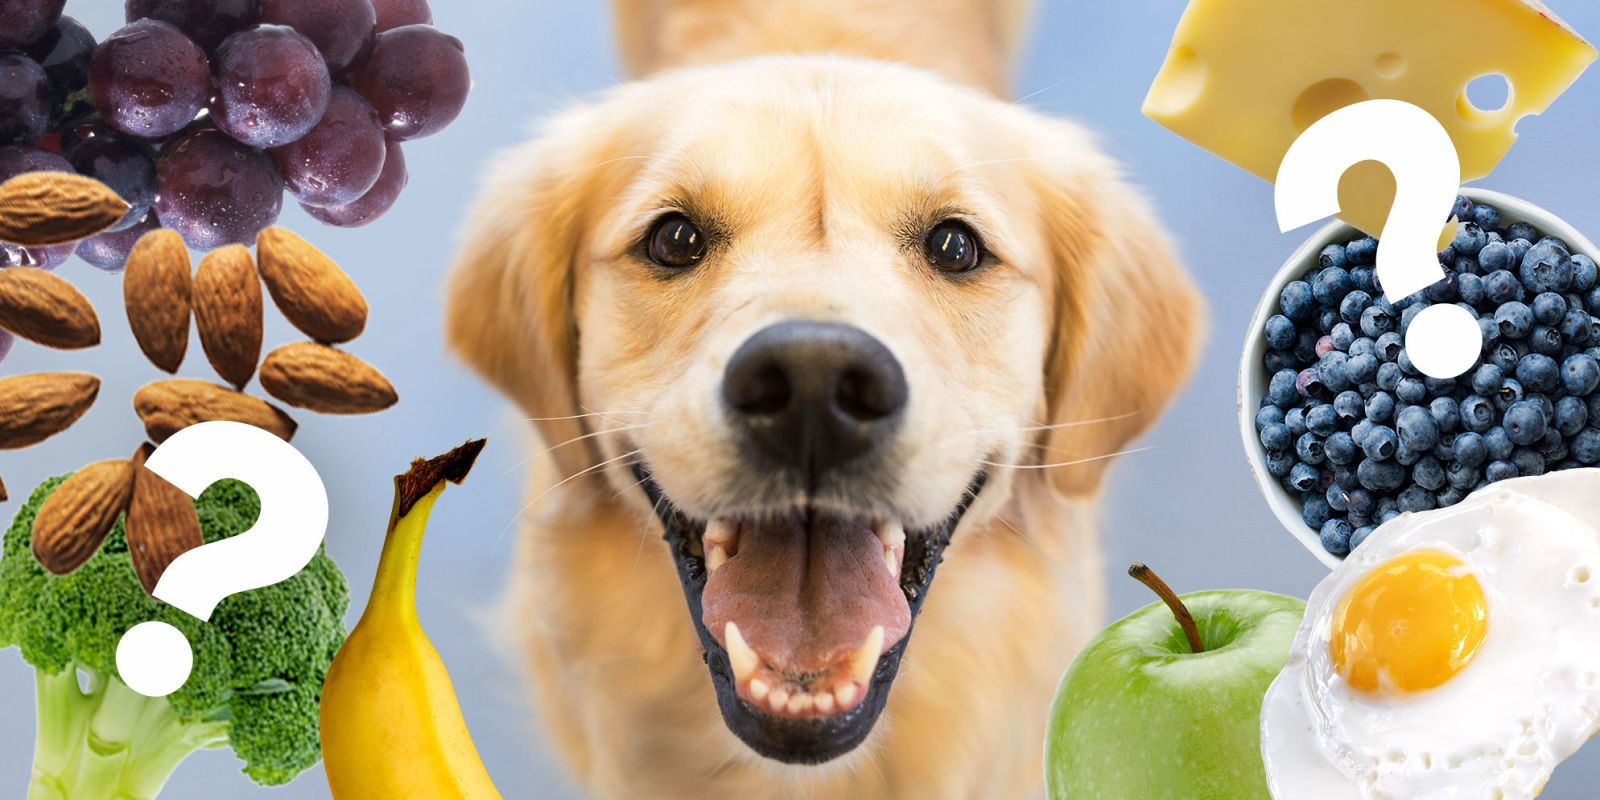 is pineapple bad for dogs